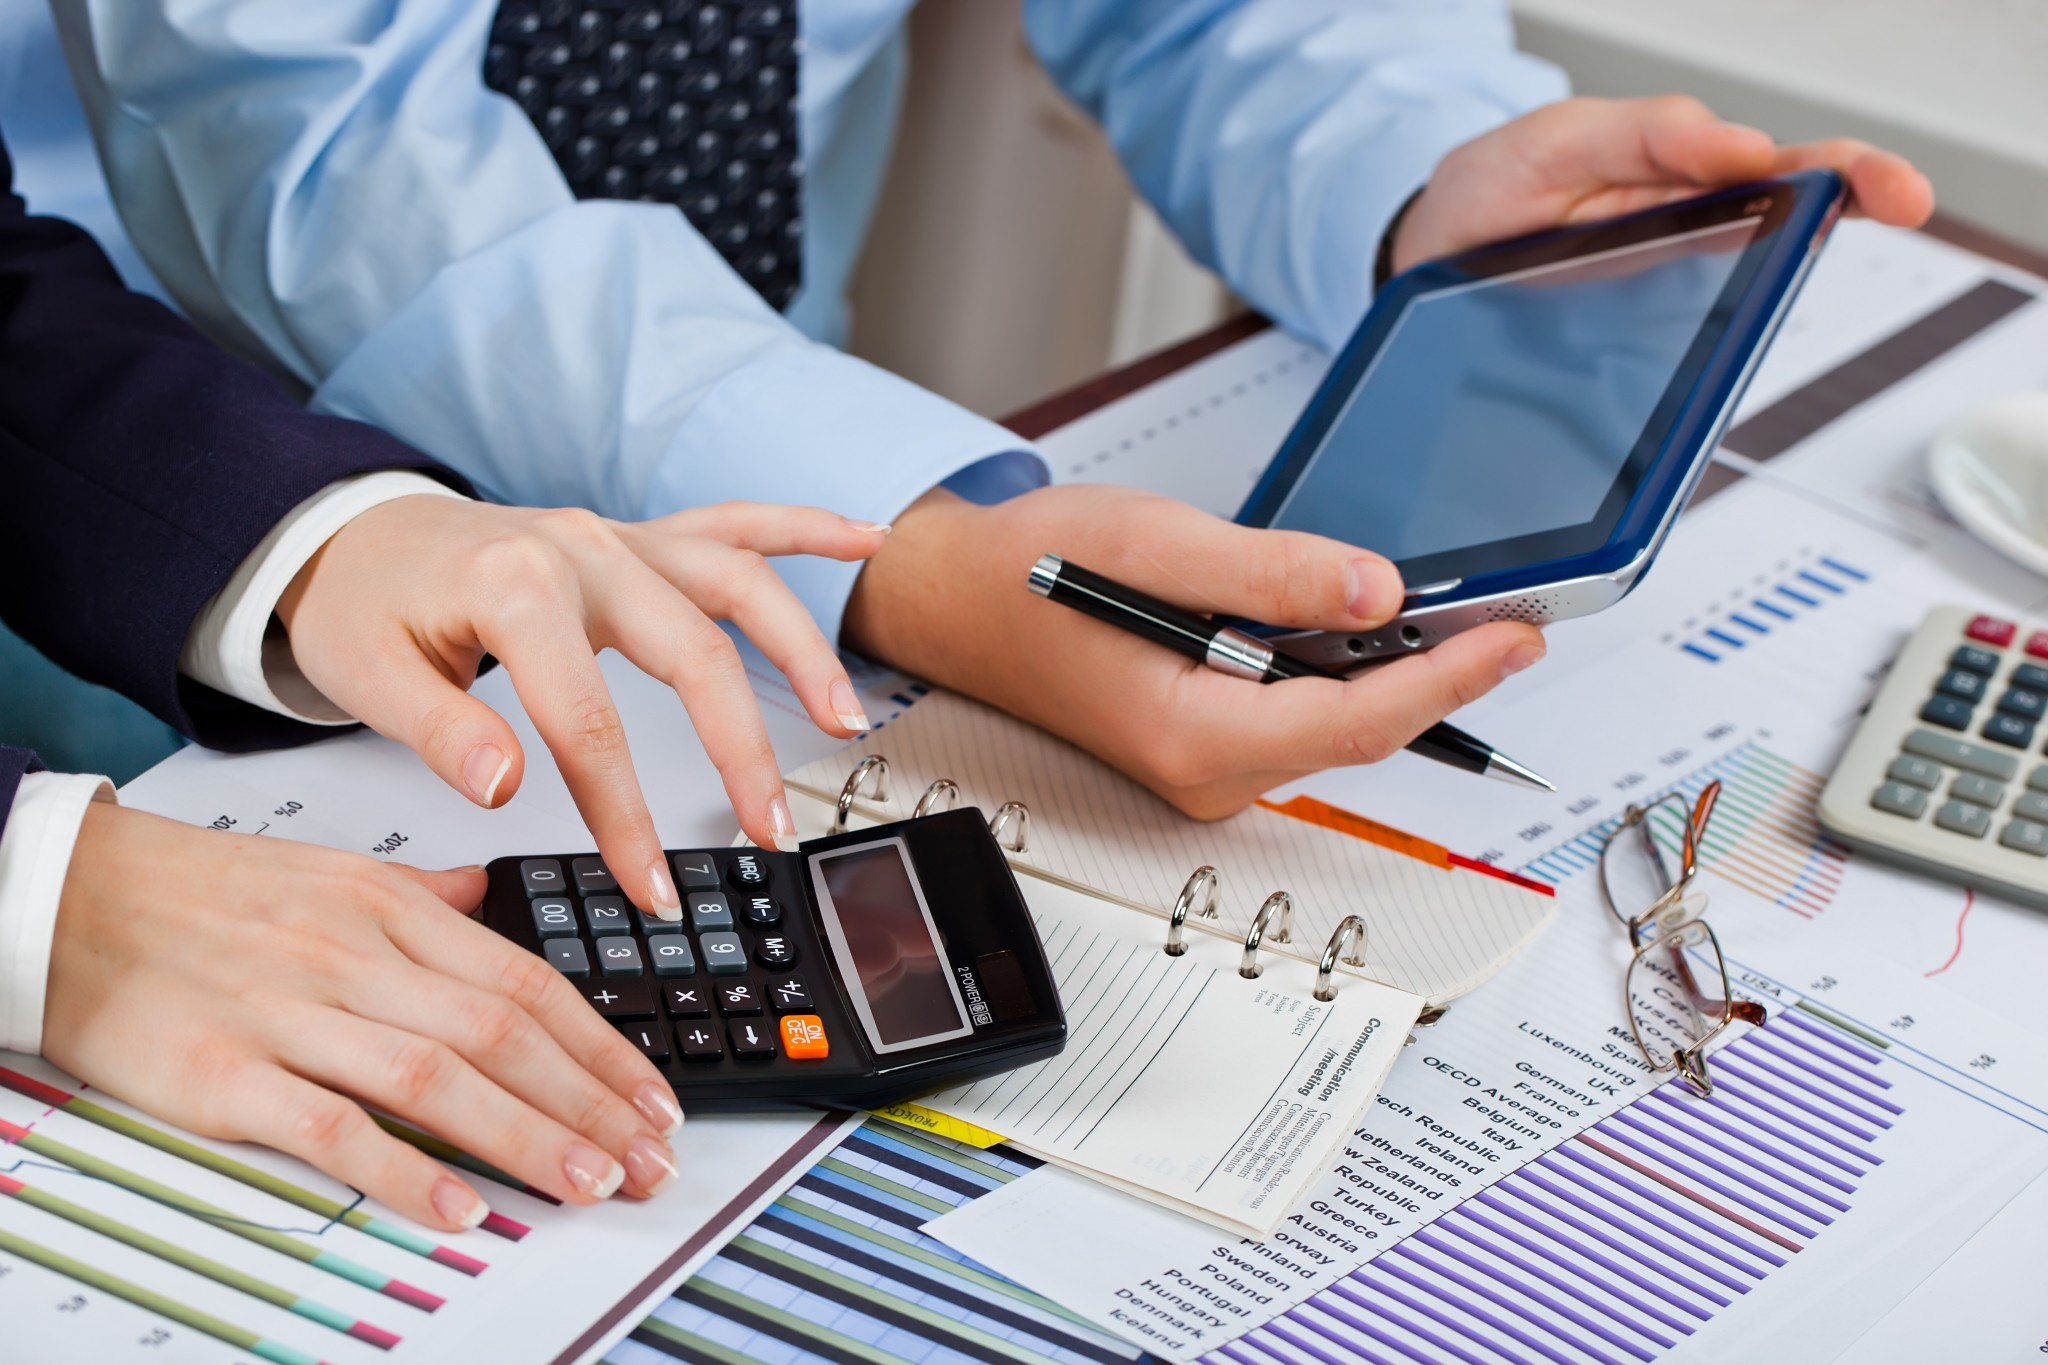 Top 5 Benefits of Outsourcing Accounting and Payroll Services